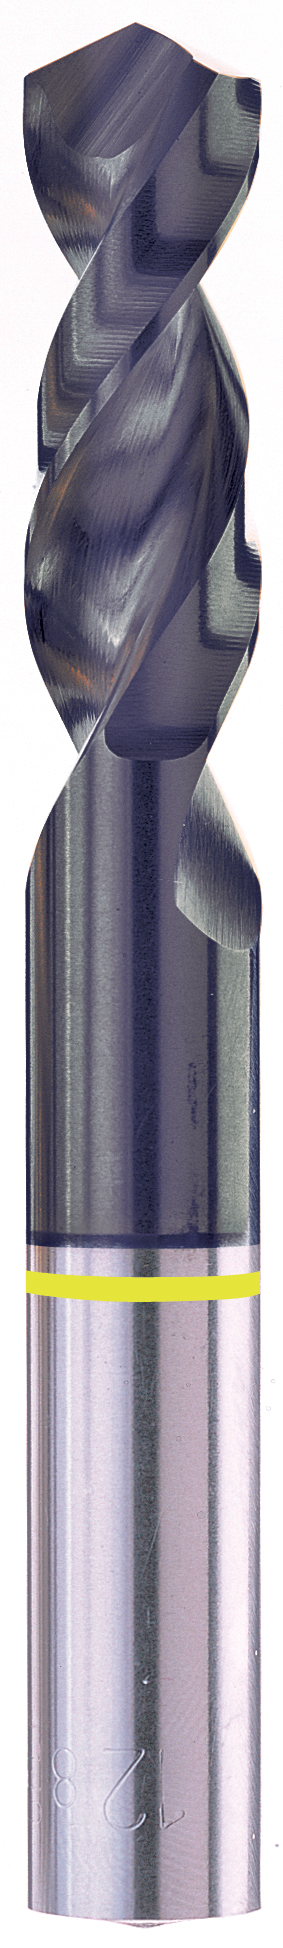 Sowa High Performance Size #47 x 38mm OAL HSCO 130º Parabolic Stub Drill